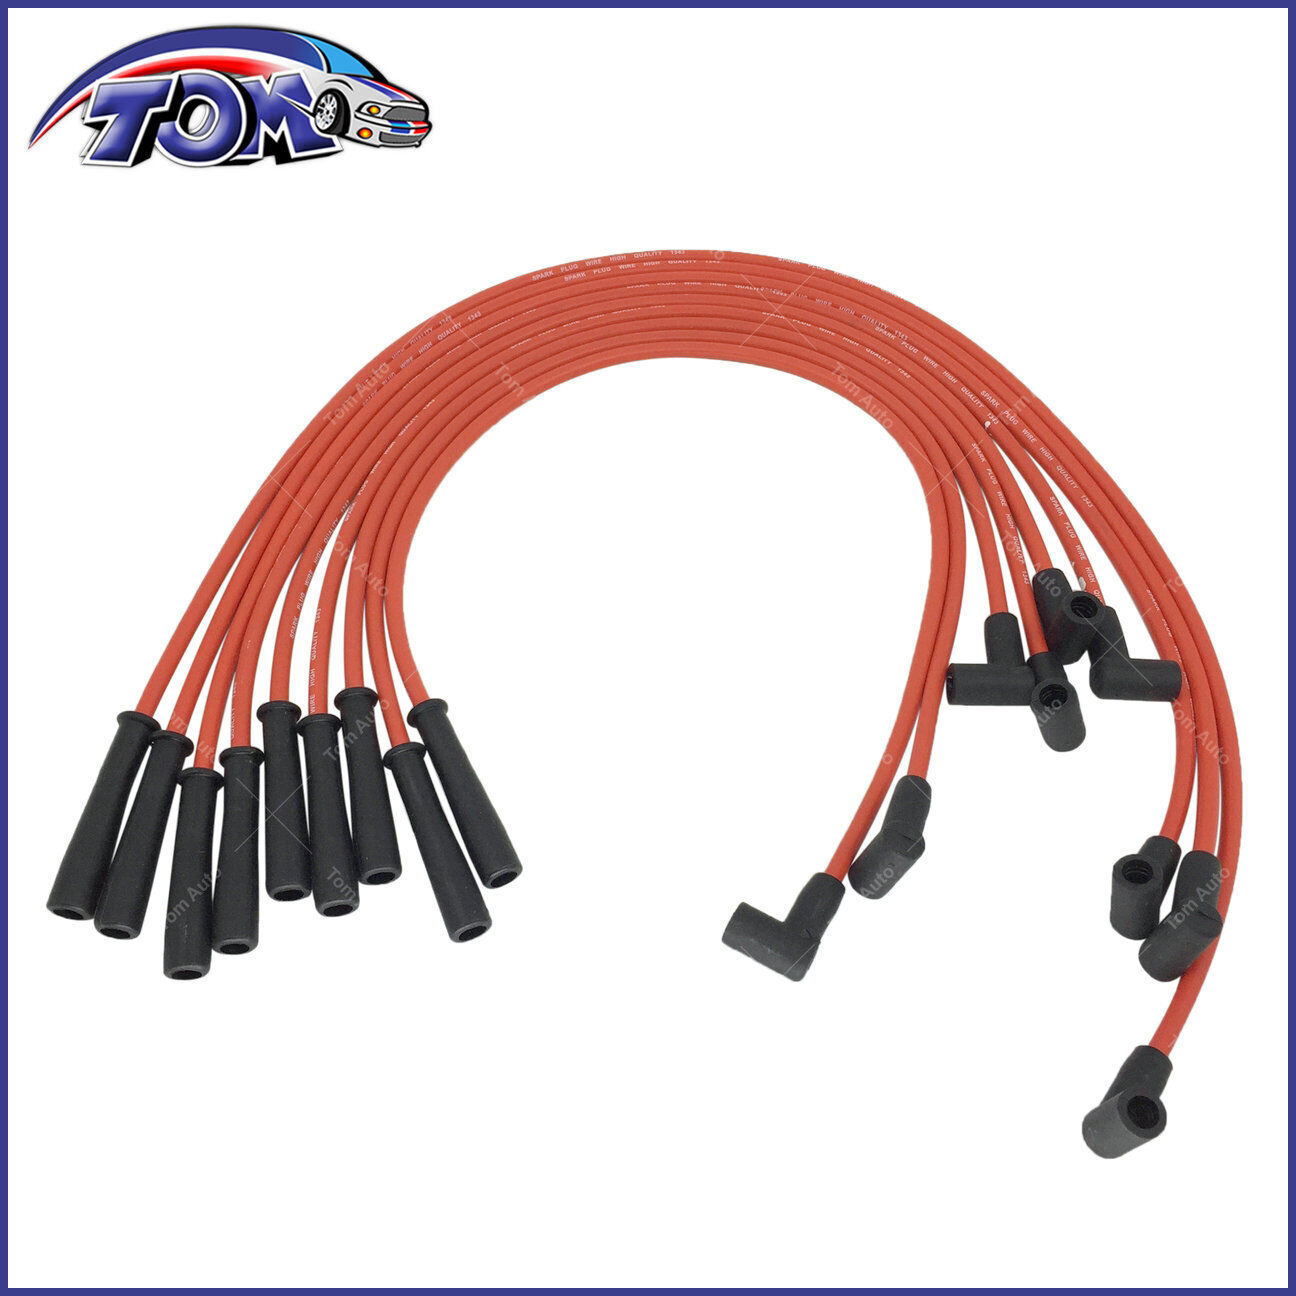 hight resolution of new spark plug wires for bbc big block chevy 454 hei str over valve cover 9875m